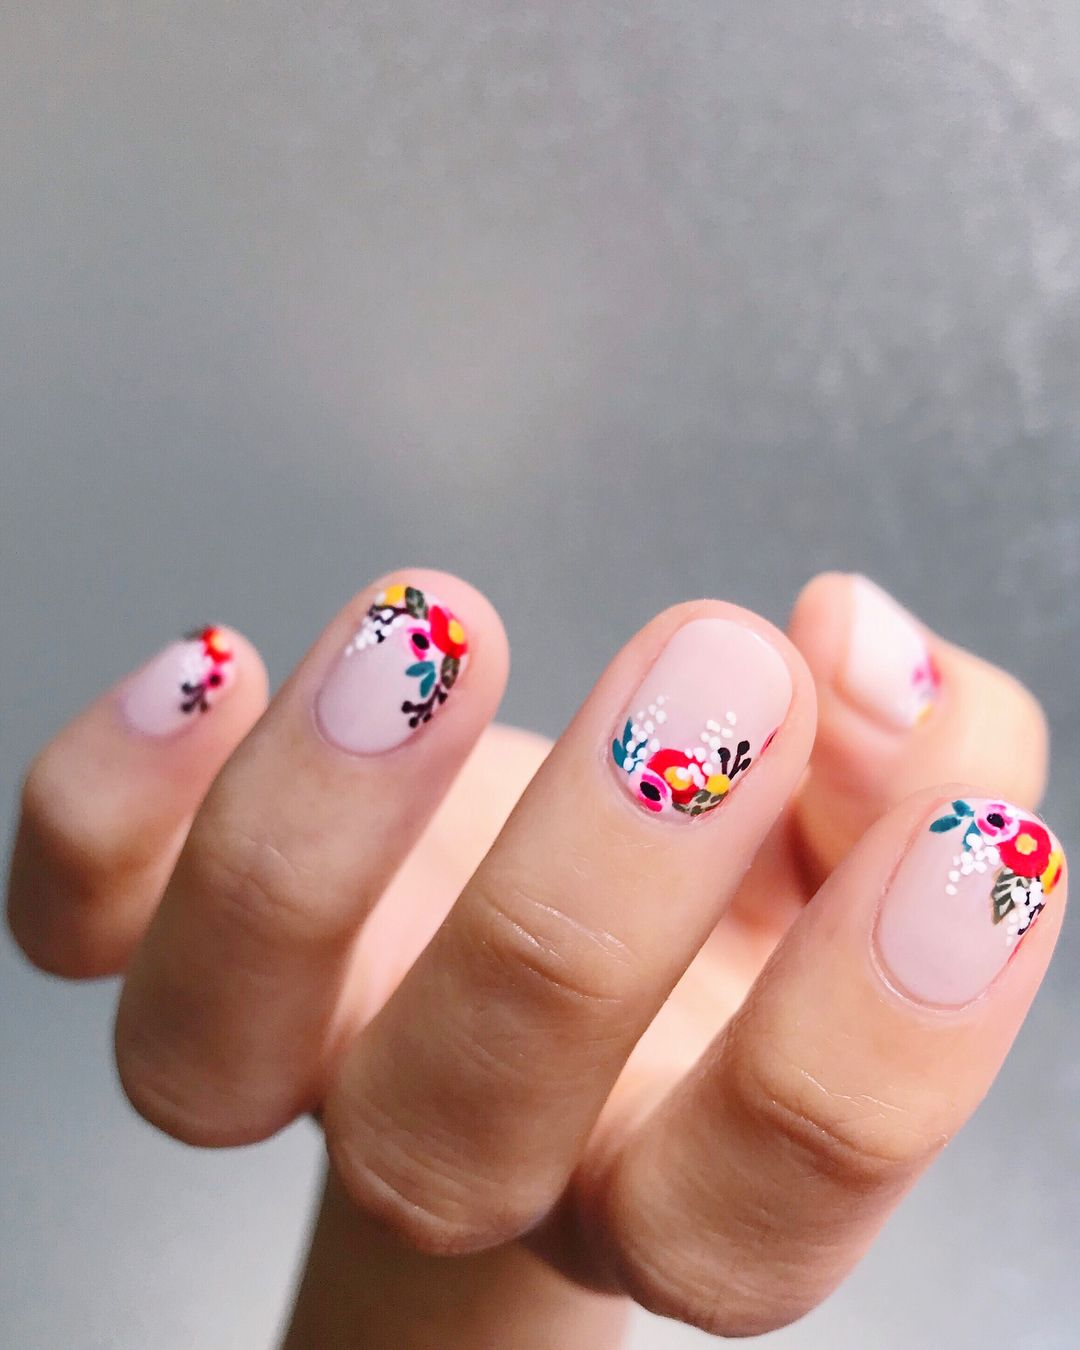 Pin by Nico Booh on My Nails | Pinterest | Spring, Makeup and Manicure